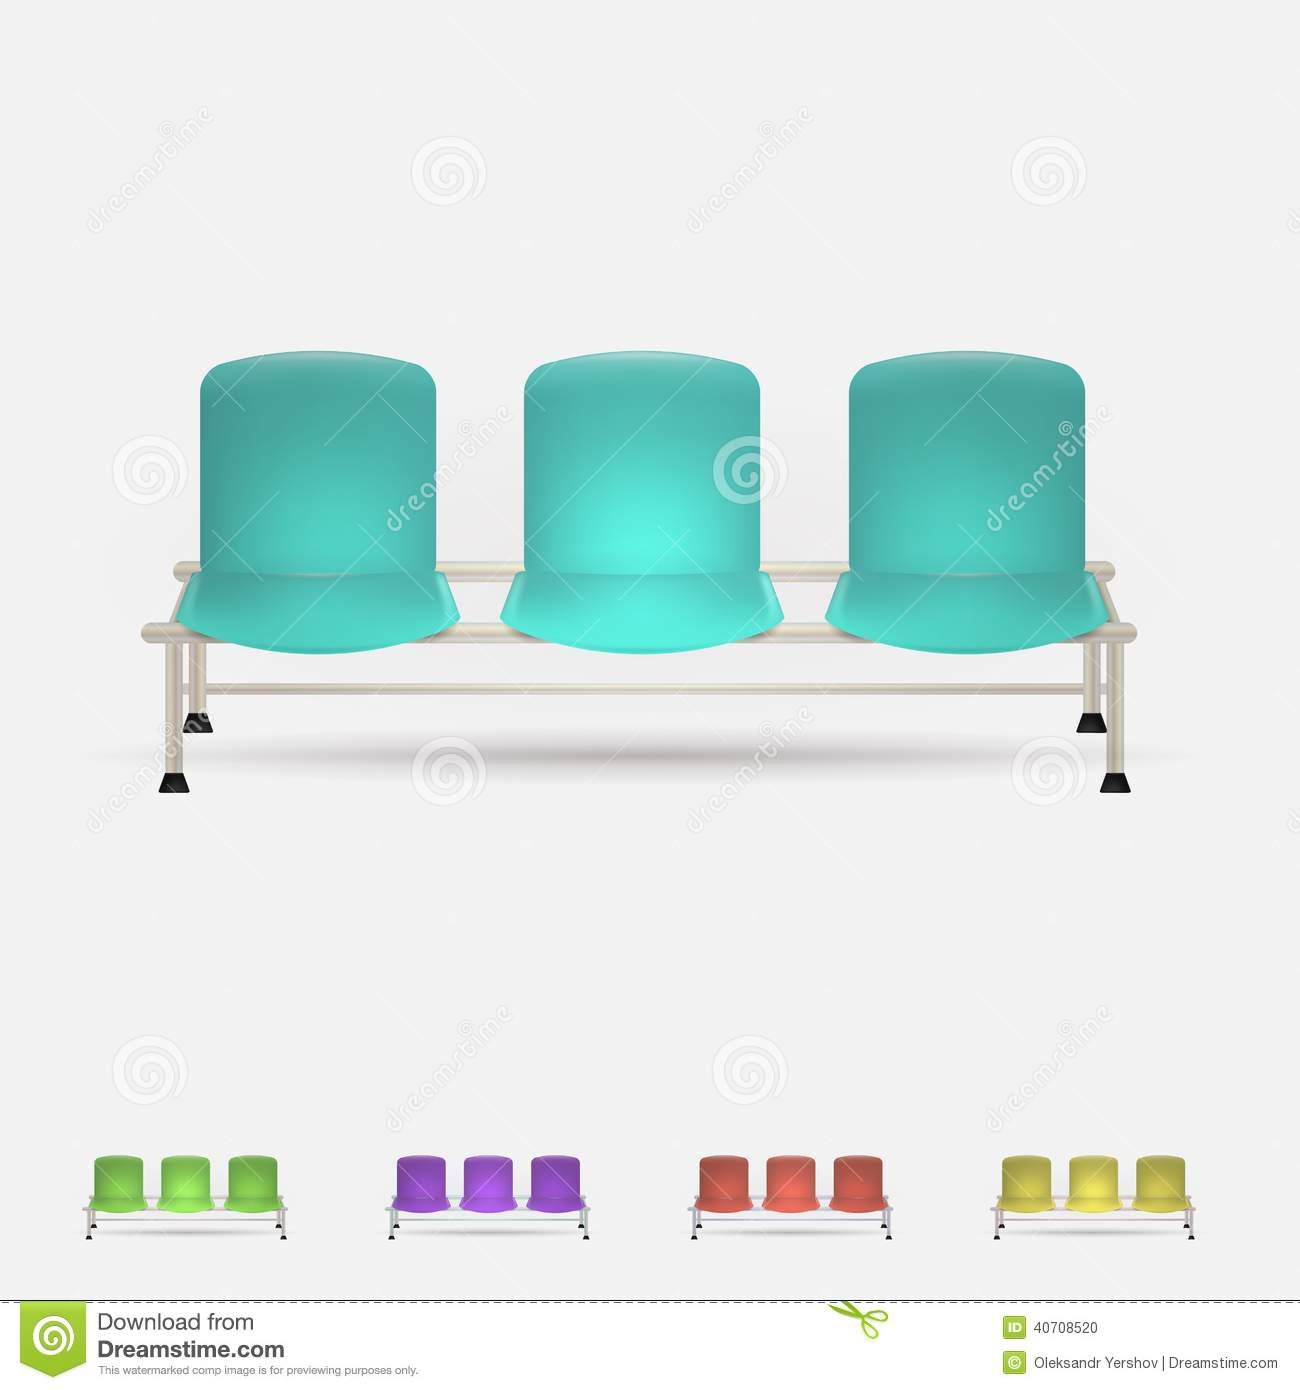 Illustration Of Colored Waiting Benches Stock Vector.